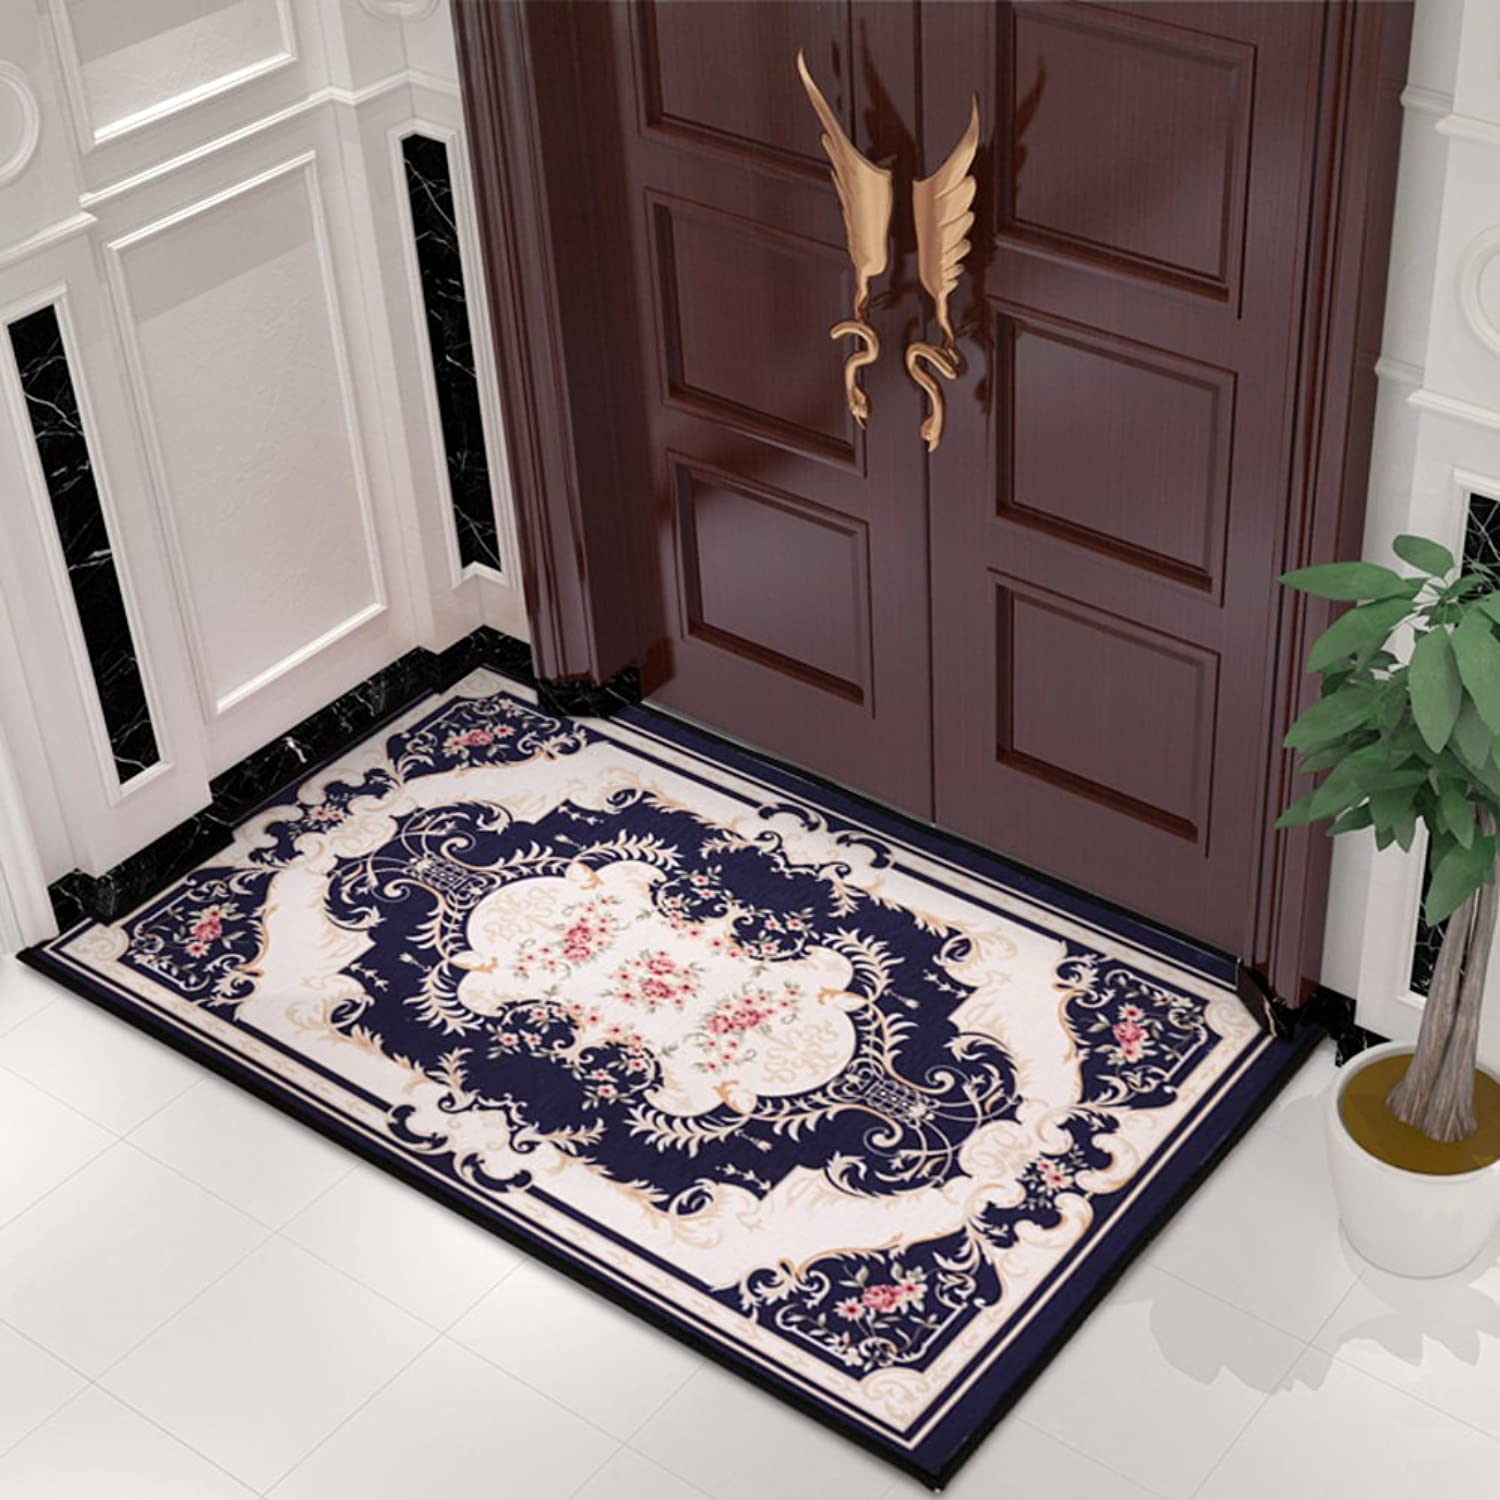 Doormat Carpet Doormat Door,Entrance,[Hall],Household use,[Bathroom],Indoor mats Living Room,Bedroom mats [Absorbent],Anti-skidding-J 90x140cm(35x55inch)